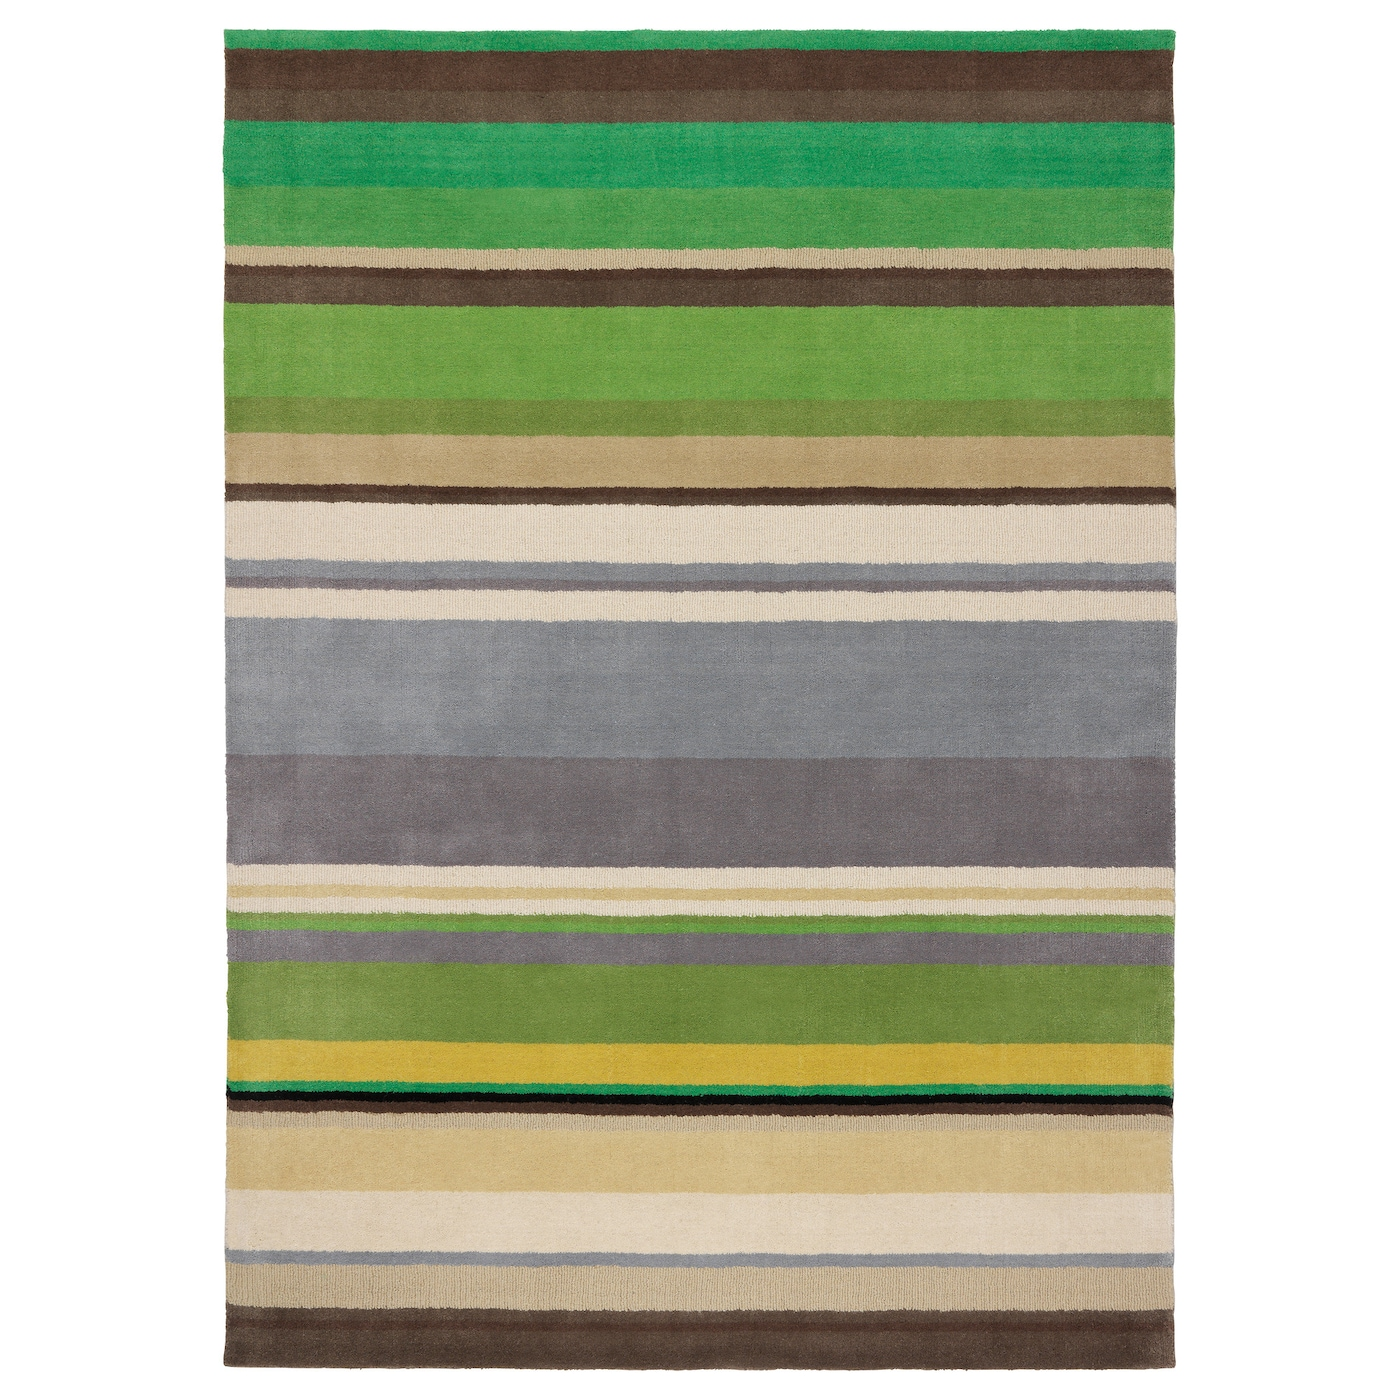 Stockholm rug low pile handmade green 170x240 cm ikea for Ikea rugs